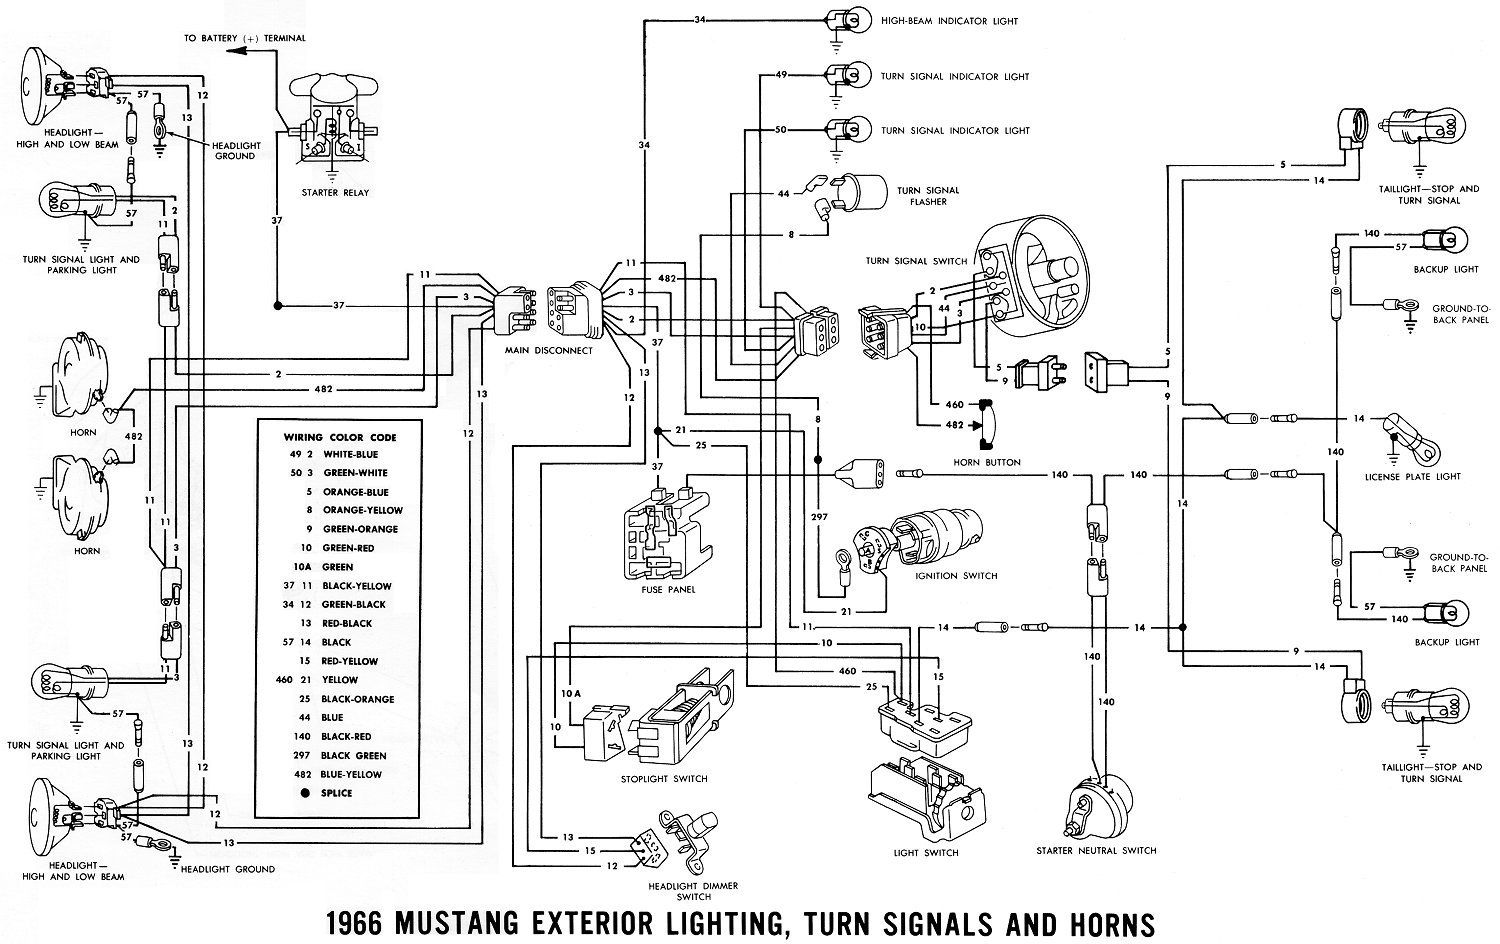 hight resolution of 1966 mustang wiring diagrams average joe restoration in 1966 mustang wiring diagram